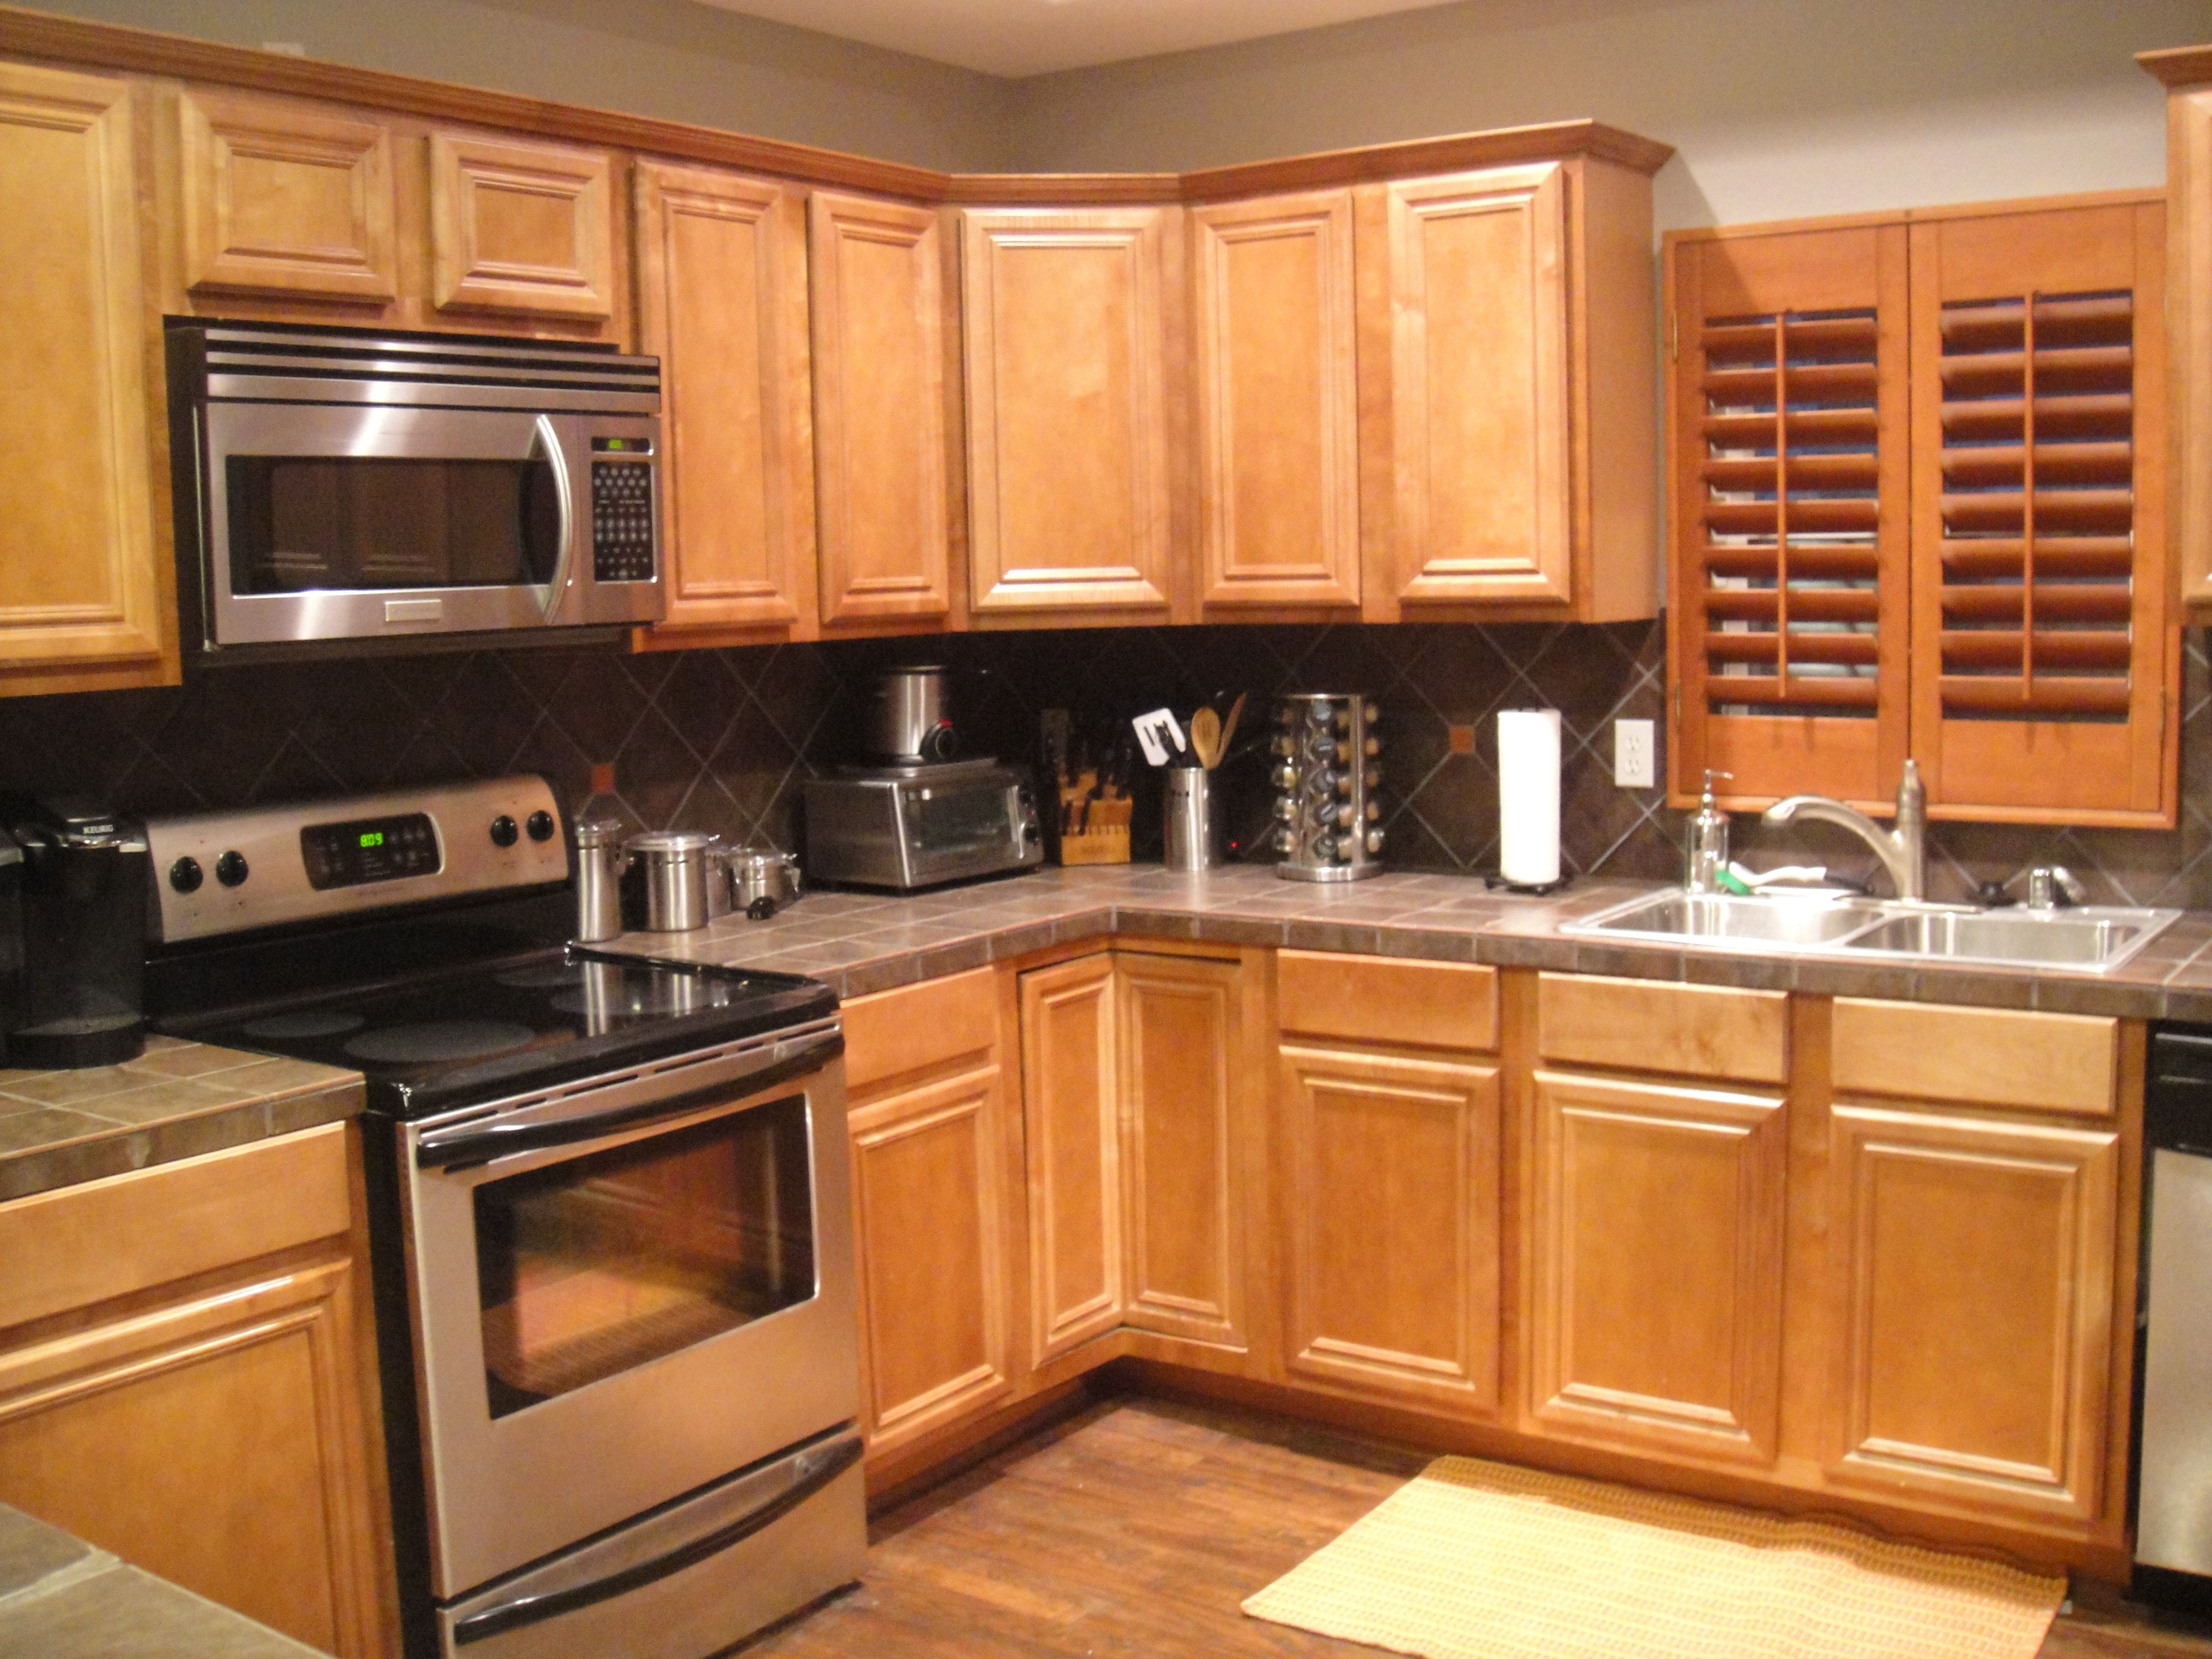 Dark Gray Kitchen Cabinets With Light Gray Walls Honey Oak Cabinets With Very Dark Grey Wall, Light Grey